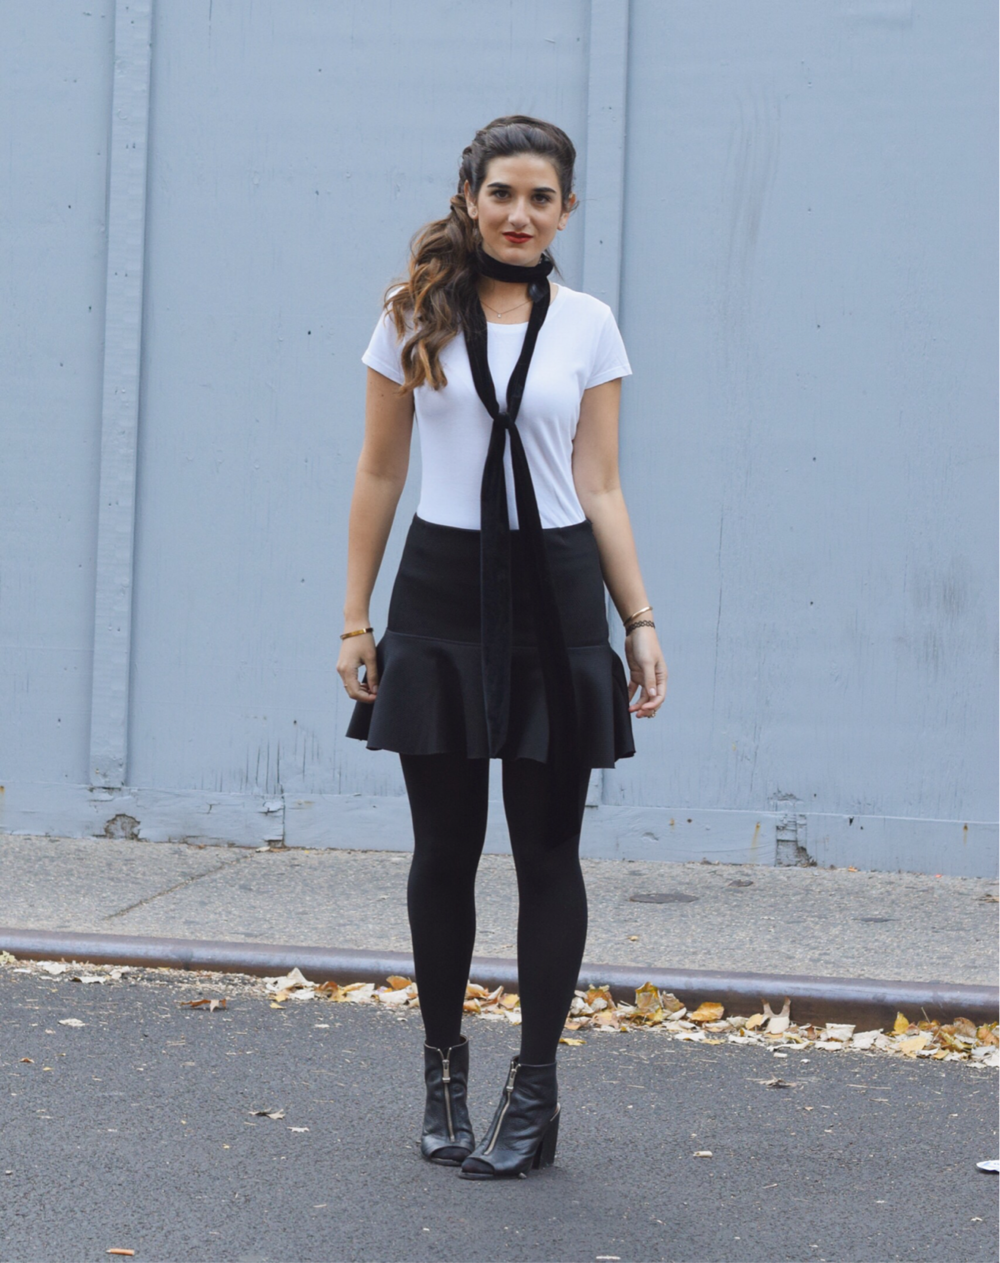 White Tee and Skinny Necktie Onno T-shirts Louboutins & Love Fashion Blog Esther Santer NYC Street Style Blogger Braid Brunette Lydell NYC Jewelry Earrings Black Skirt H&M Tattoo Bracelet Ring OUtfit OOTD Girl Women Trendy Booties Shoes Fall Winter.png